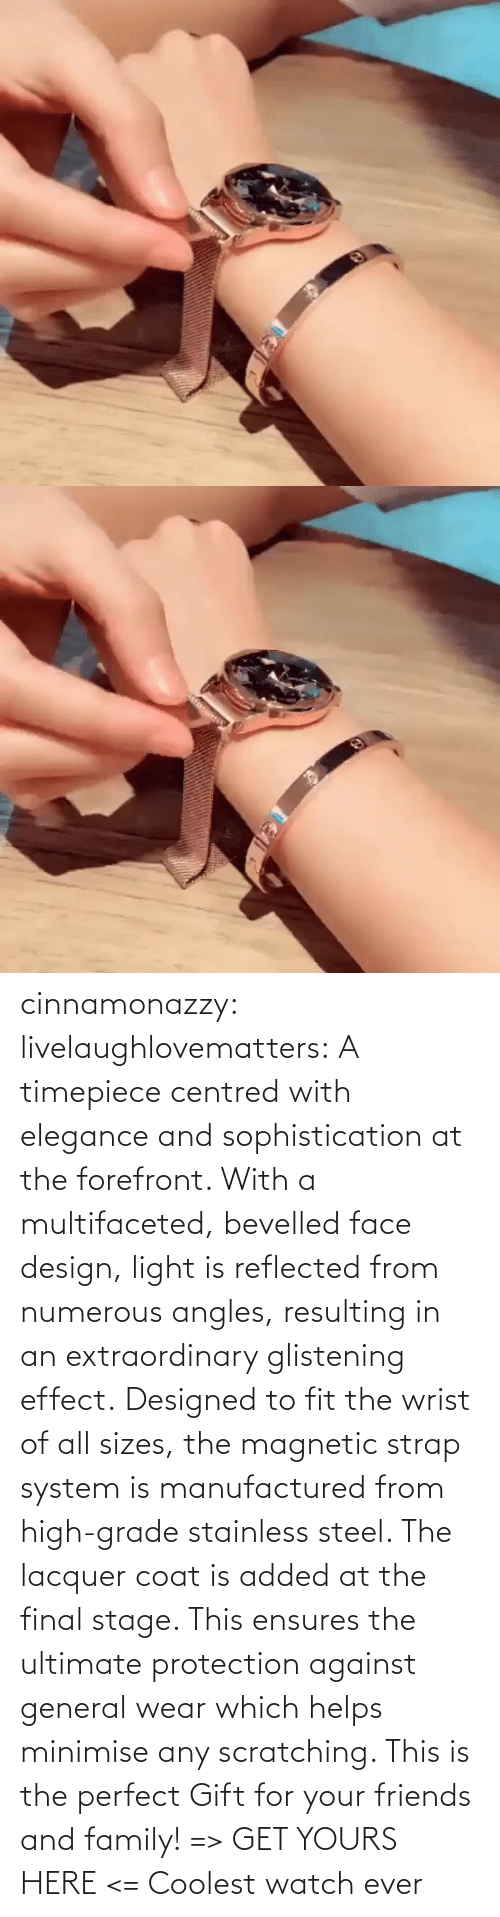 perfect: cinnamonazzy:  livelaughlovematters: A timepiece centred with elegance and sophistication at the forefront. With a multifaceted, bevelled face design, light is reflected from numerous angles, resulting in an extraordinary glistening effect. Designed to fit the wrist of all sizes, the magnetic strap system is manufactured from high-grade stainless steel. The lacquer coat is added at the final stage. This ensures the ultimate protection against general wear which helps minimise any scratching. This is the perfect Gift for your friends and family! => GET YOURS HERE <=    Coolest watch ever